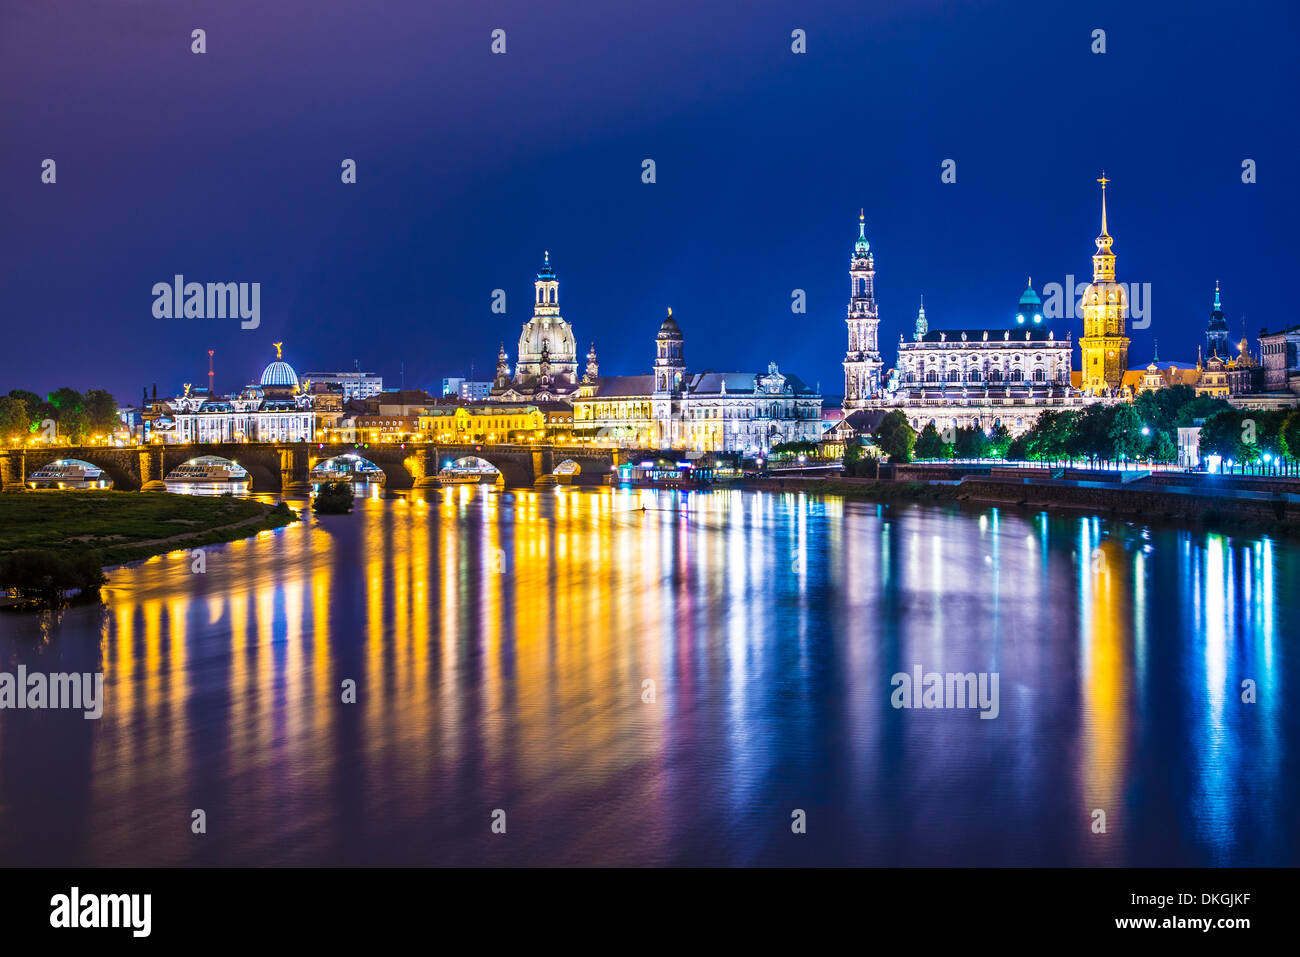 Dresden, Germany above the Elbe River. - Stock Image